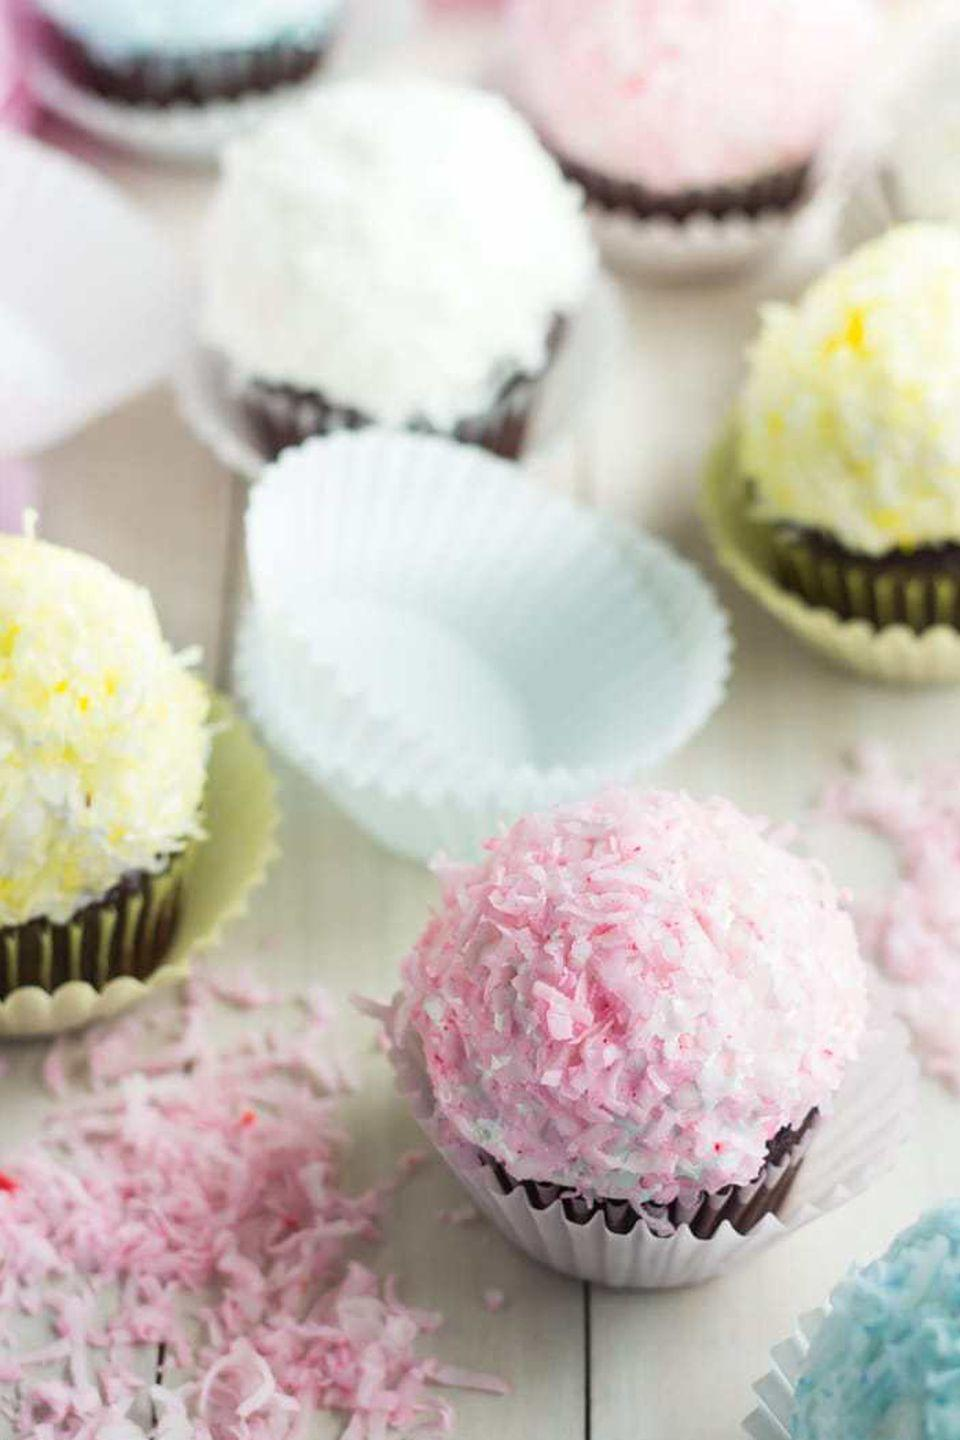 """<p>Your favorite 90s snack has officially been outmatched by these gooey, marshmallow-covered cupcakes. </p><p>Get the full recipe from <a href=""""https://bakingamoment.com/snowball-cupcakes/"""" rel=""""nofollow noopener"""" target=""""_blank"""" data-ylk=""""slk:Baking A Moment"""" class=""""link rapid-noclick-resp"""">Baking A Moment</a>.</p>"""